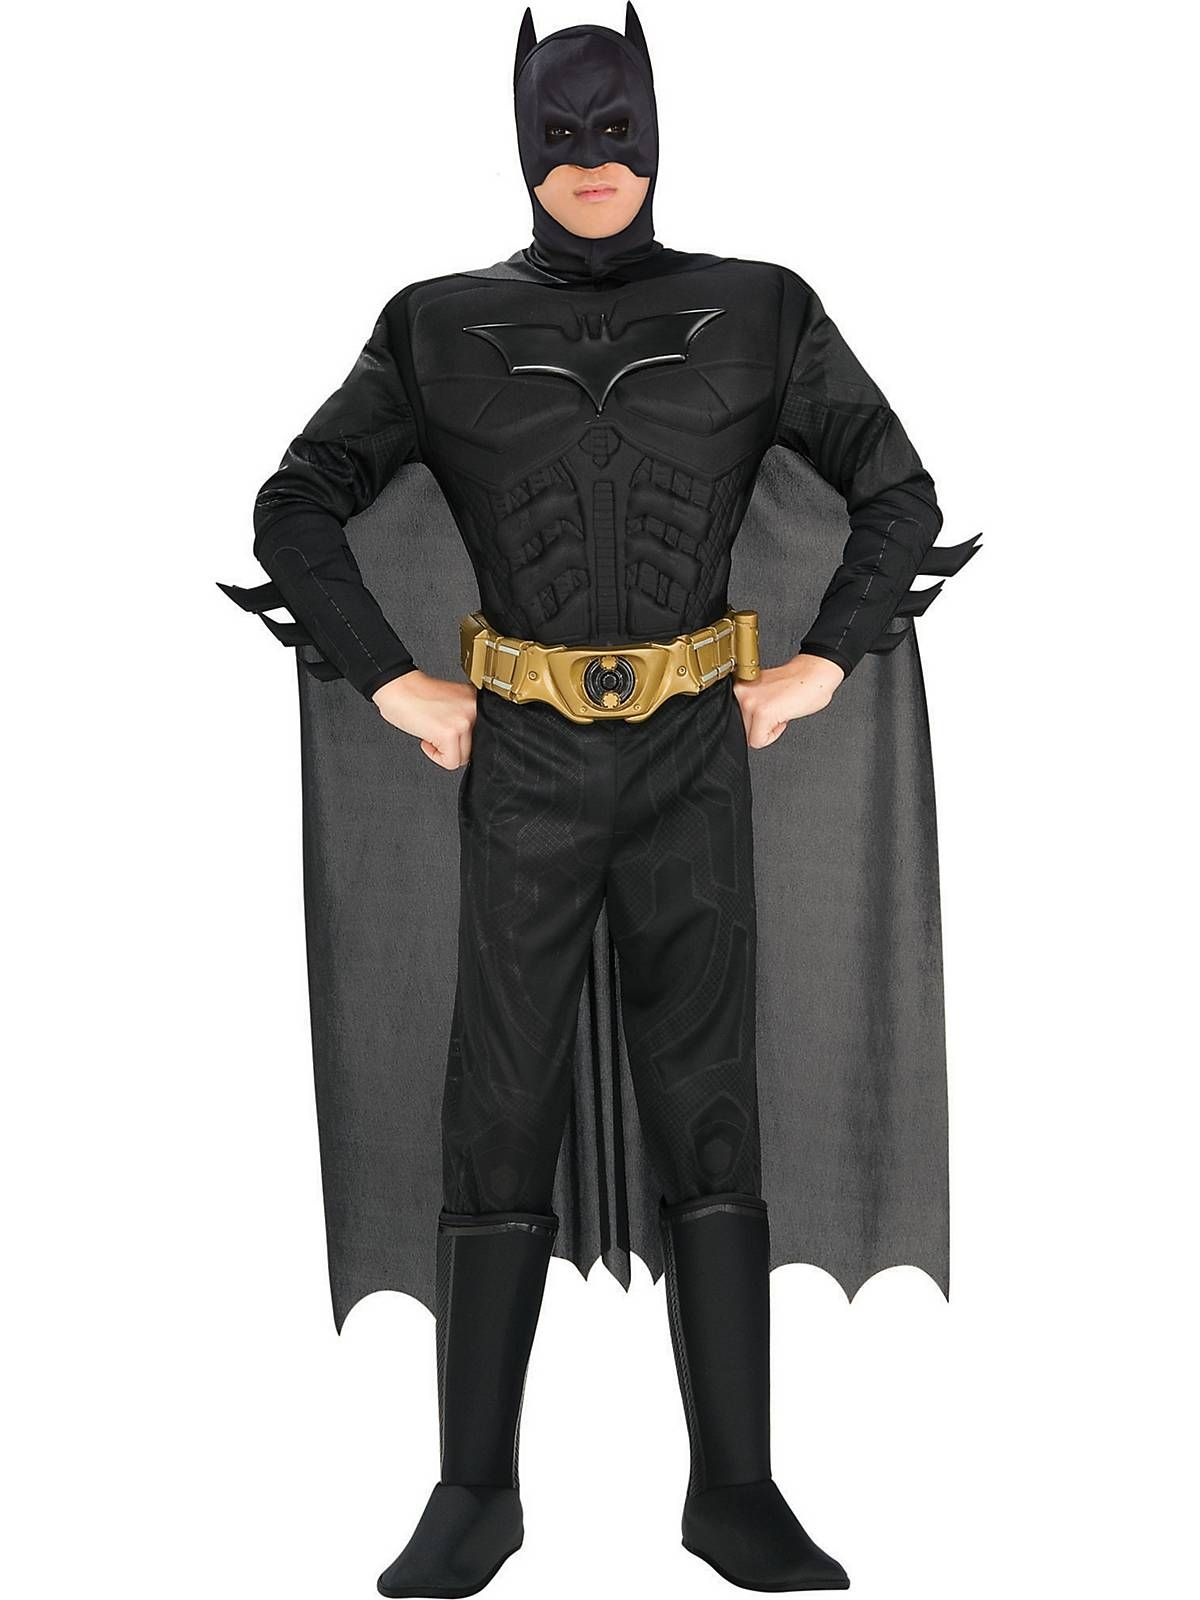 mens deluxe muscle dark knight batman costume see more costume ideas for halloween and more at costumesupercentercom